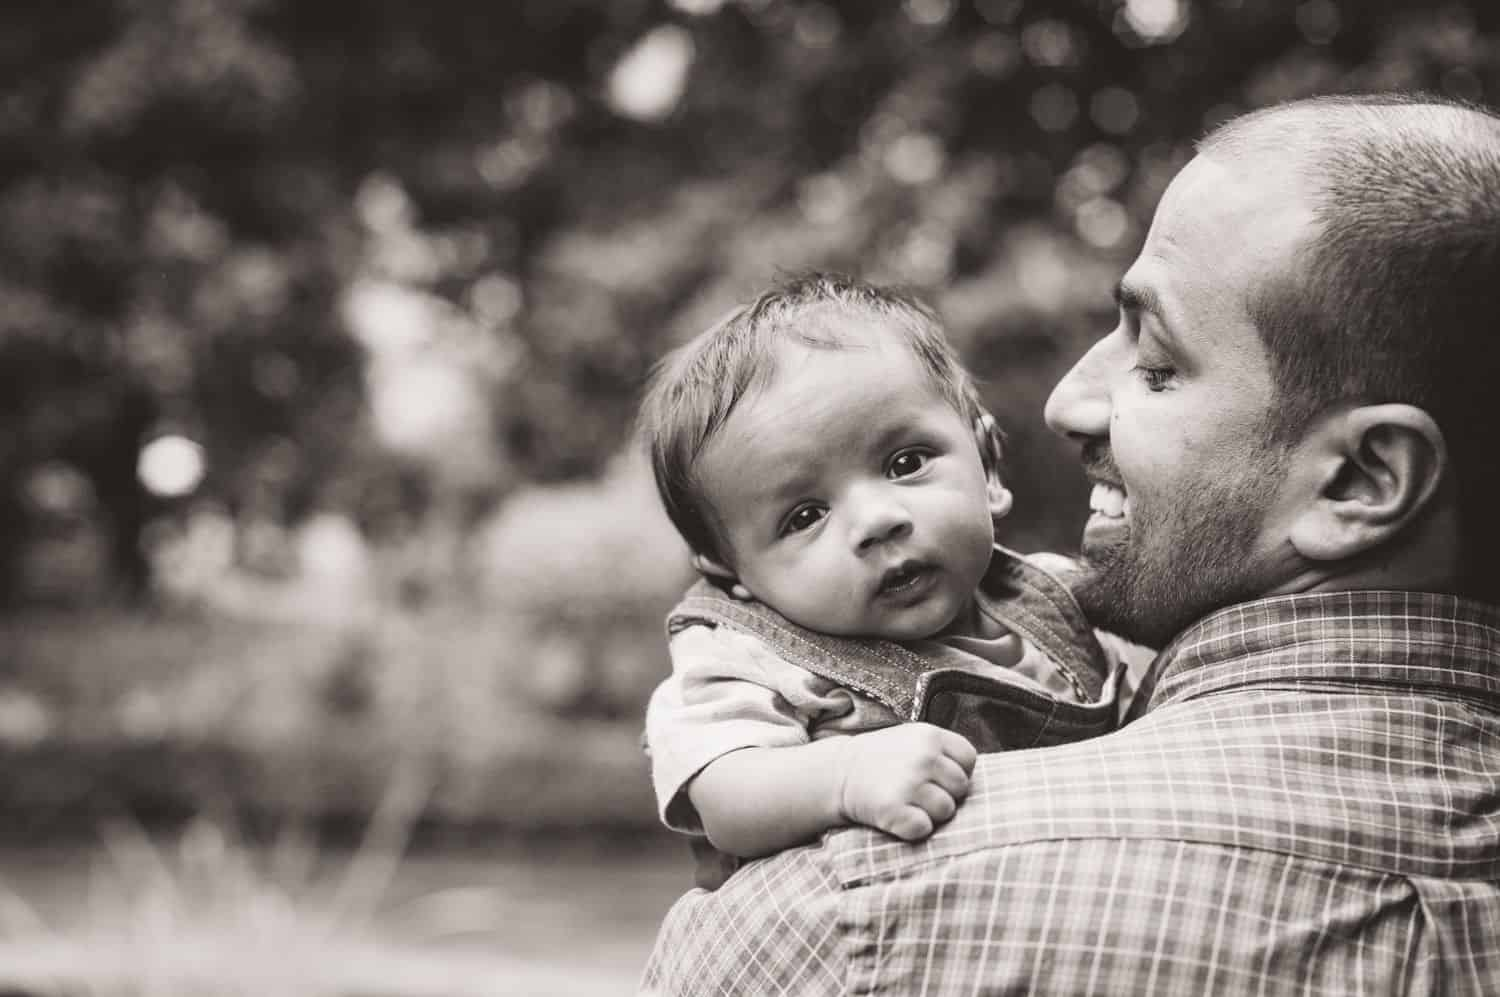 A dad snuggles his toddler son close to his face in black and white.